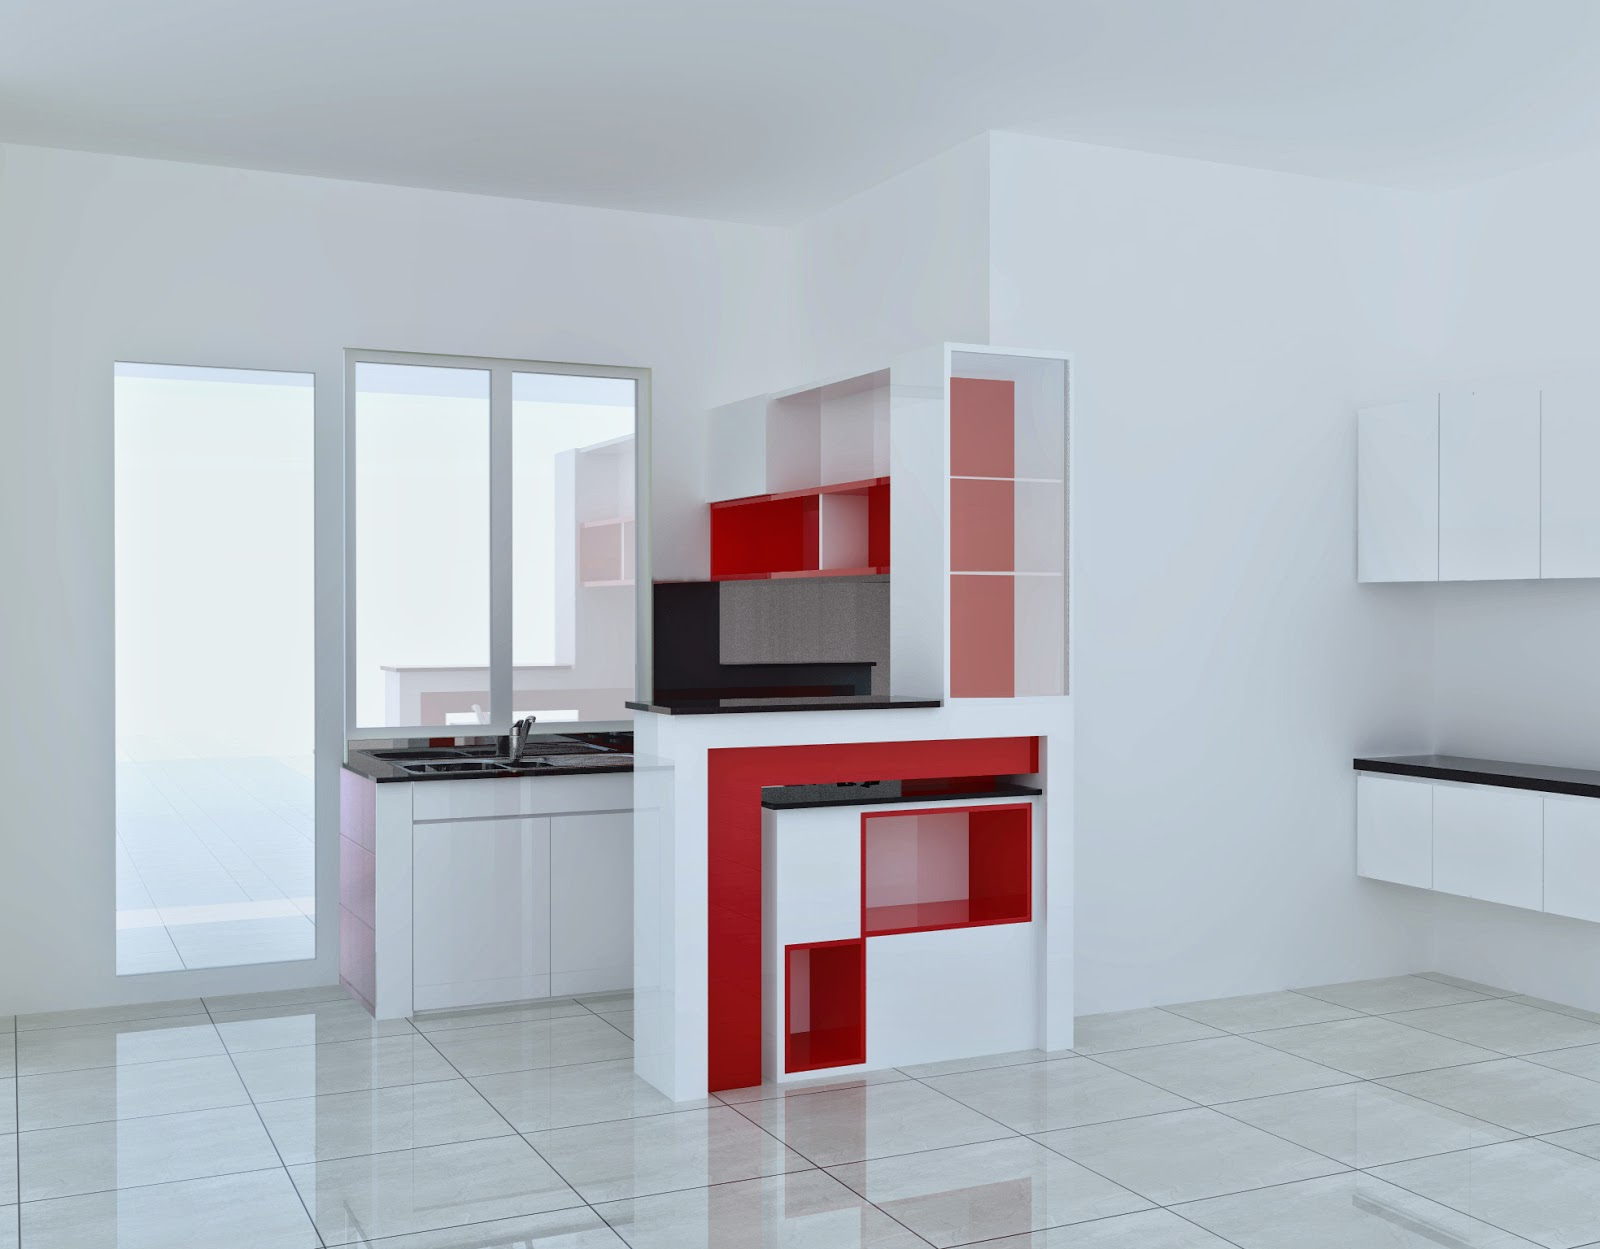 Vẽ 1 tủ bếp - draw kitchen cabinet -furniture using sketchup - Trung